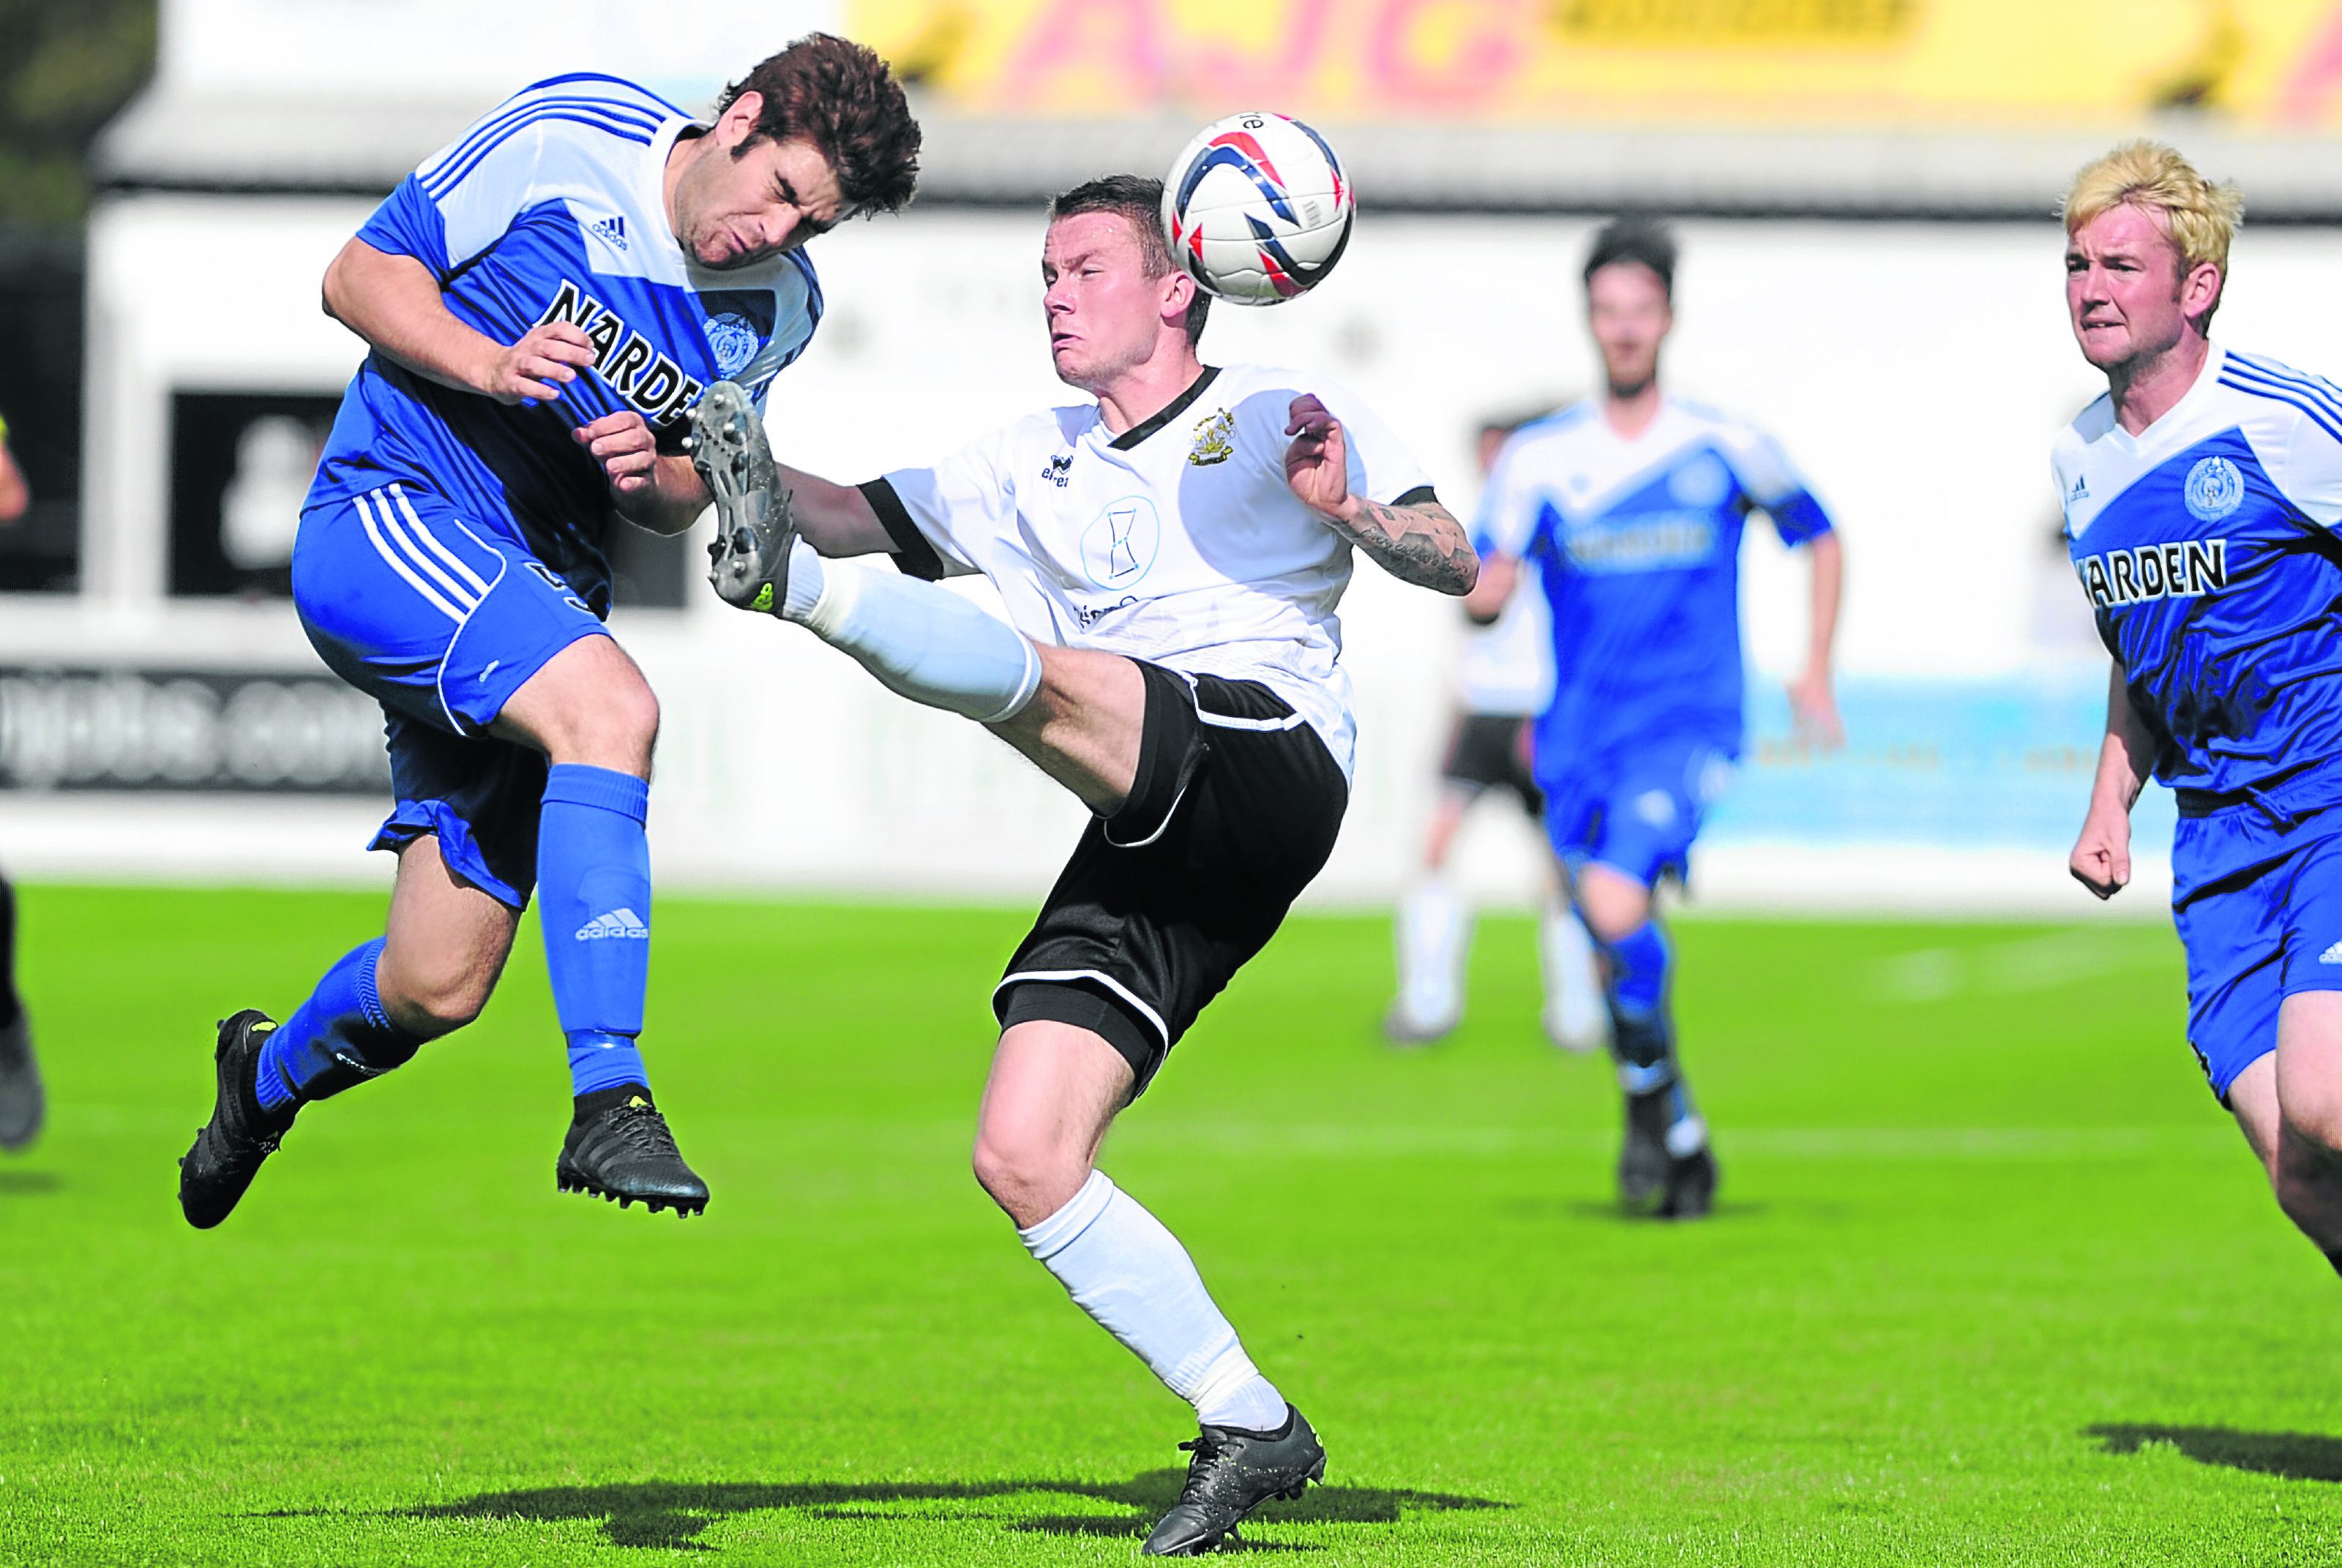 Nairn's Calum Riddell, left, was diagnosed three months ago